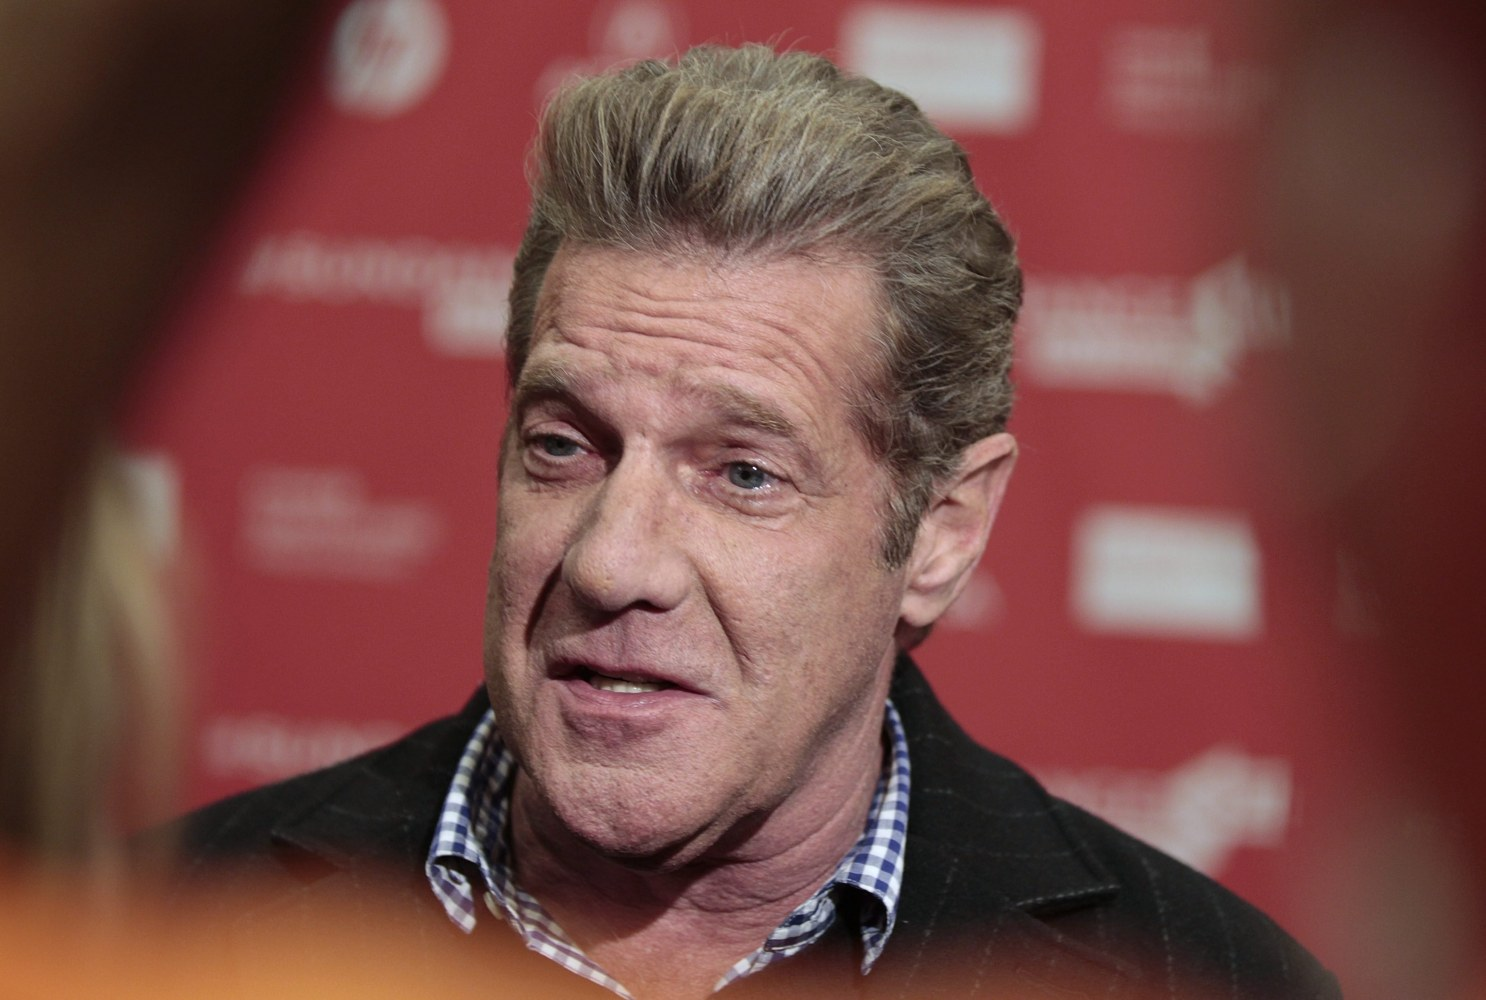 Glenn Frey in a file picture dated January 19, 2013. George Frey / EPA